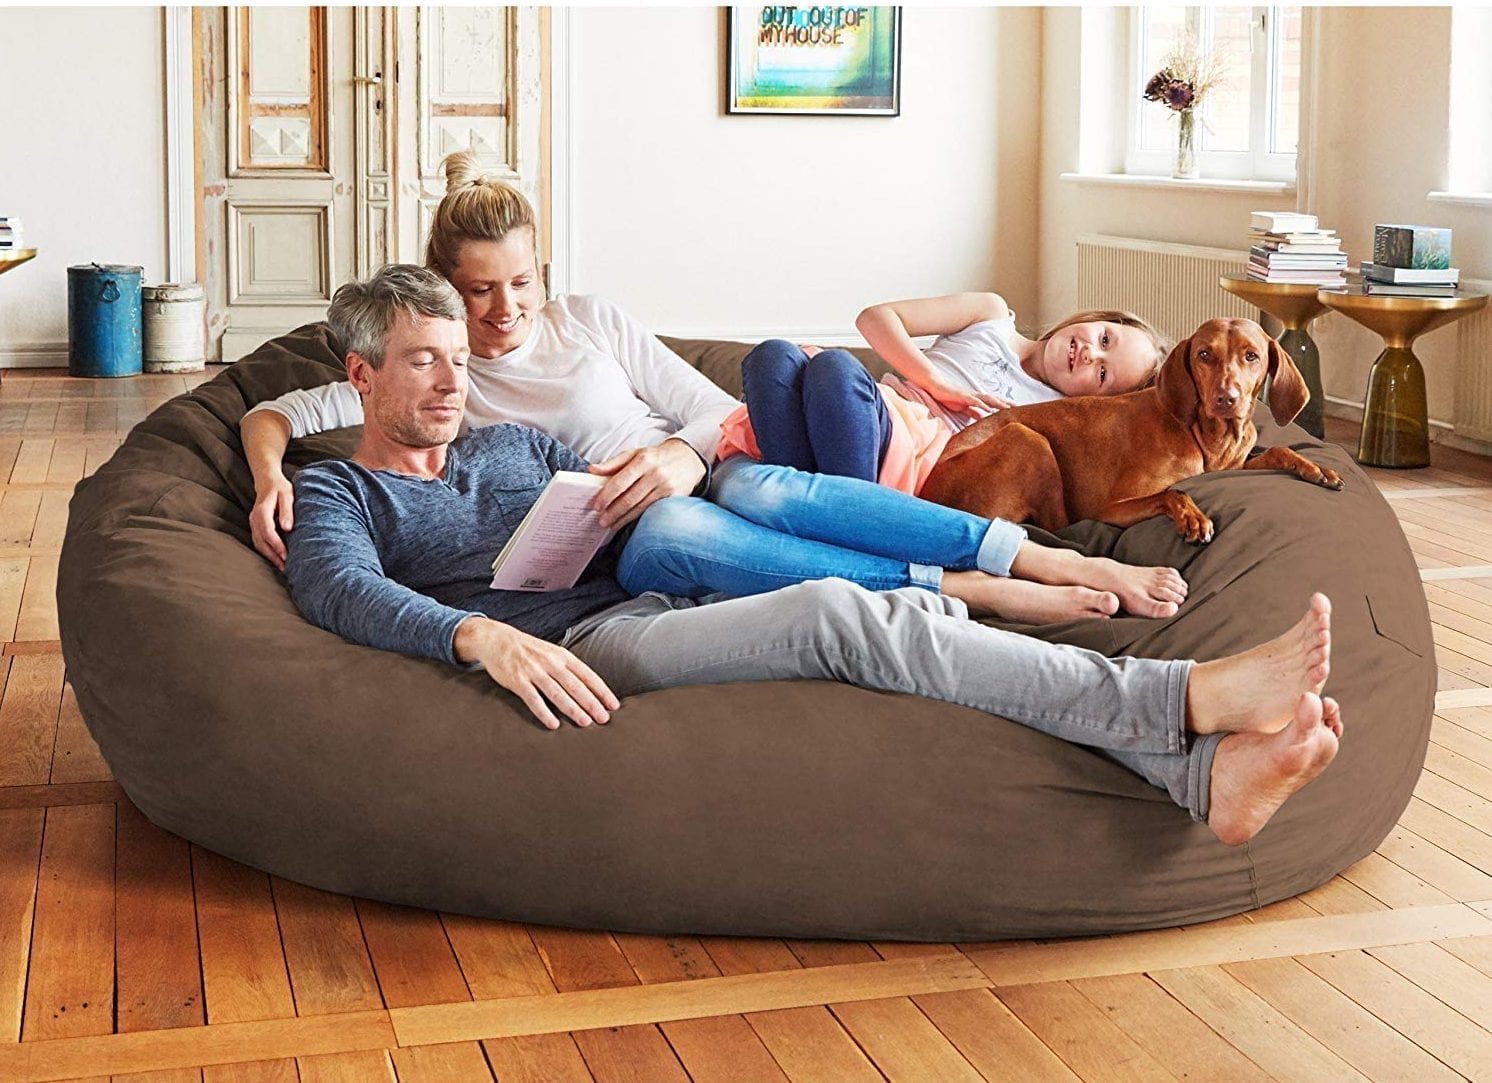 Best Large Bean Bag Chairs for Adults in 2020 - Trendy Brands